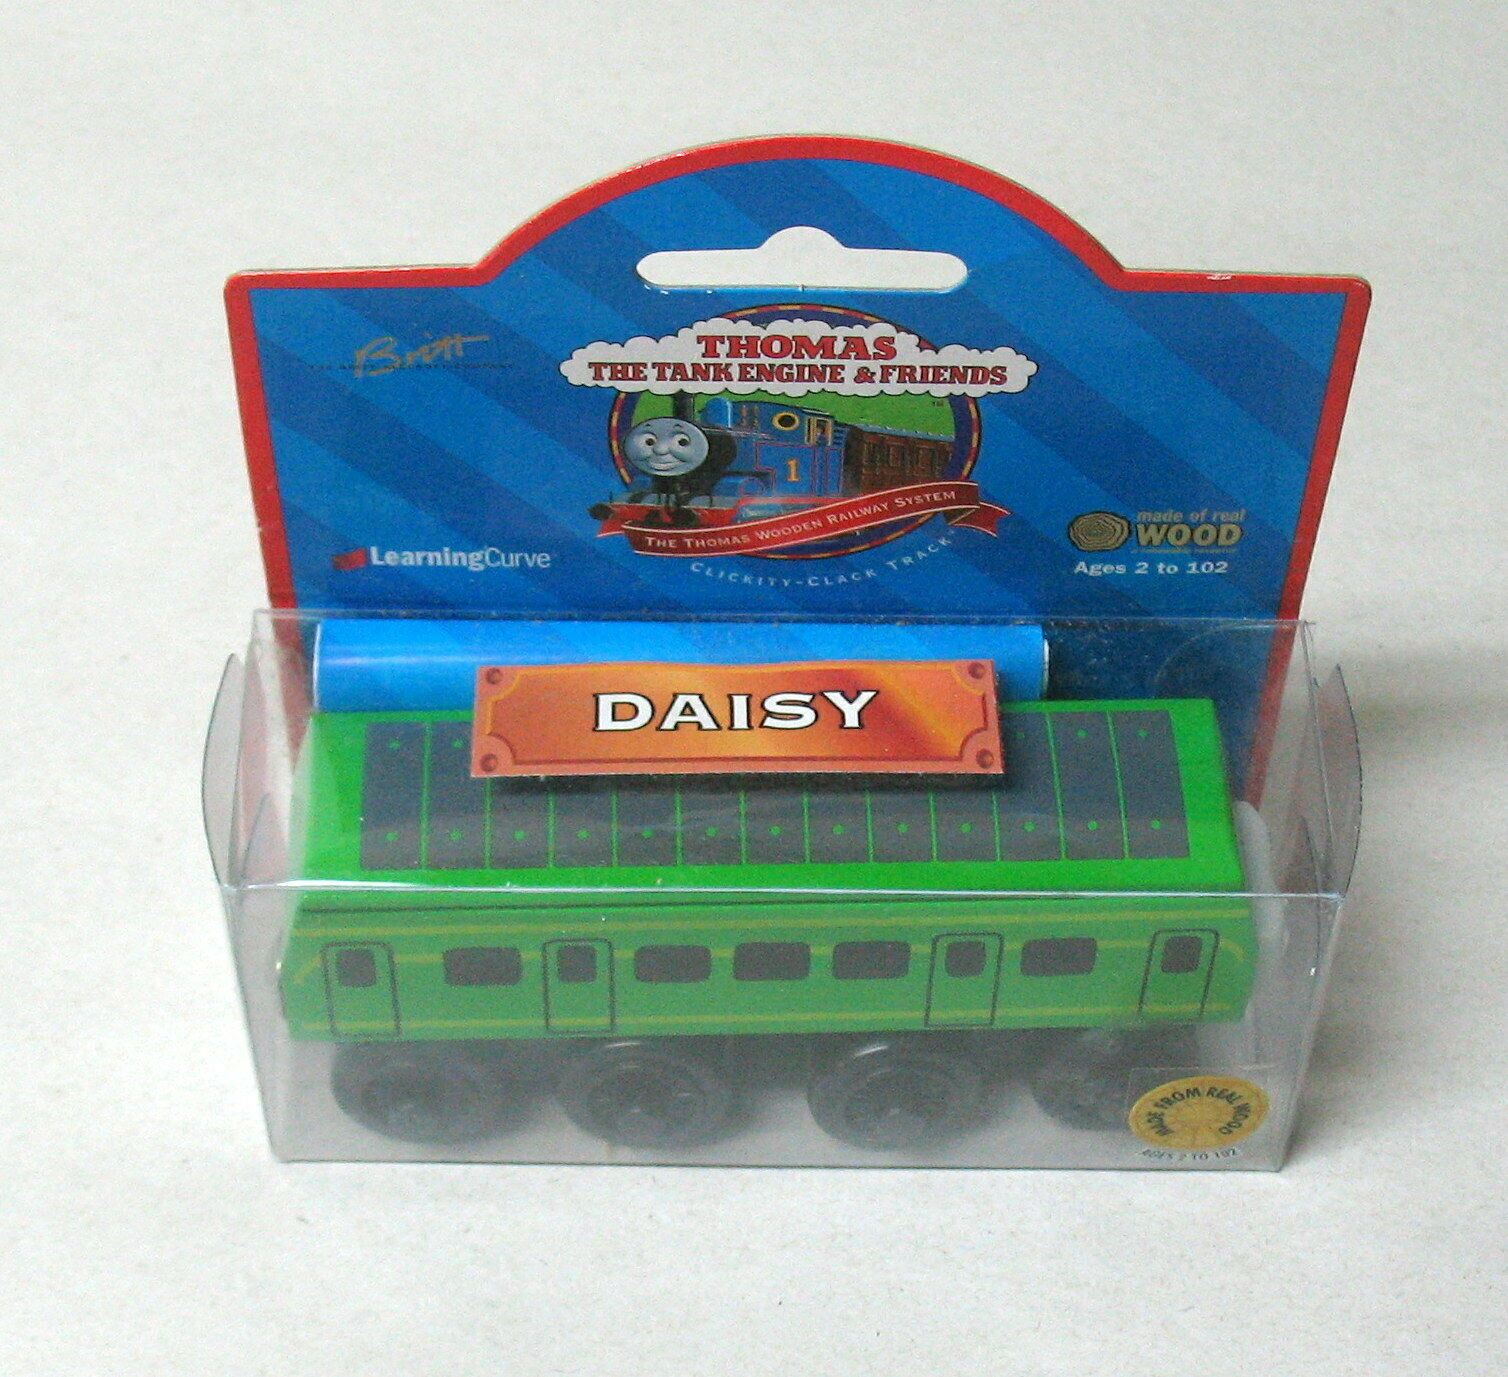 DAISY, Wooden, Thomas the Tank Engine & Friends, braun LABEL, 1999, NIP